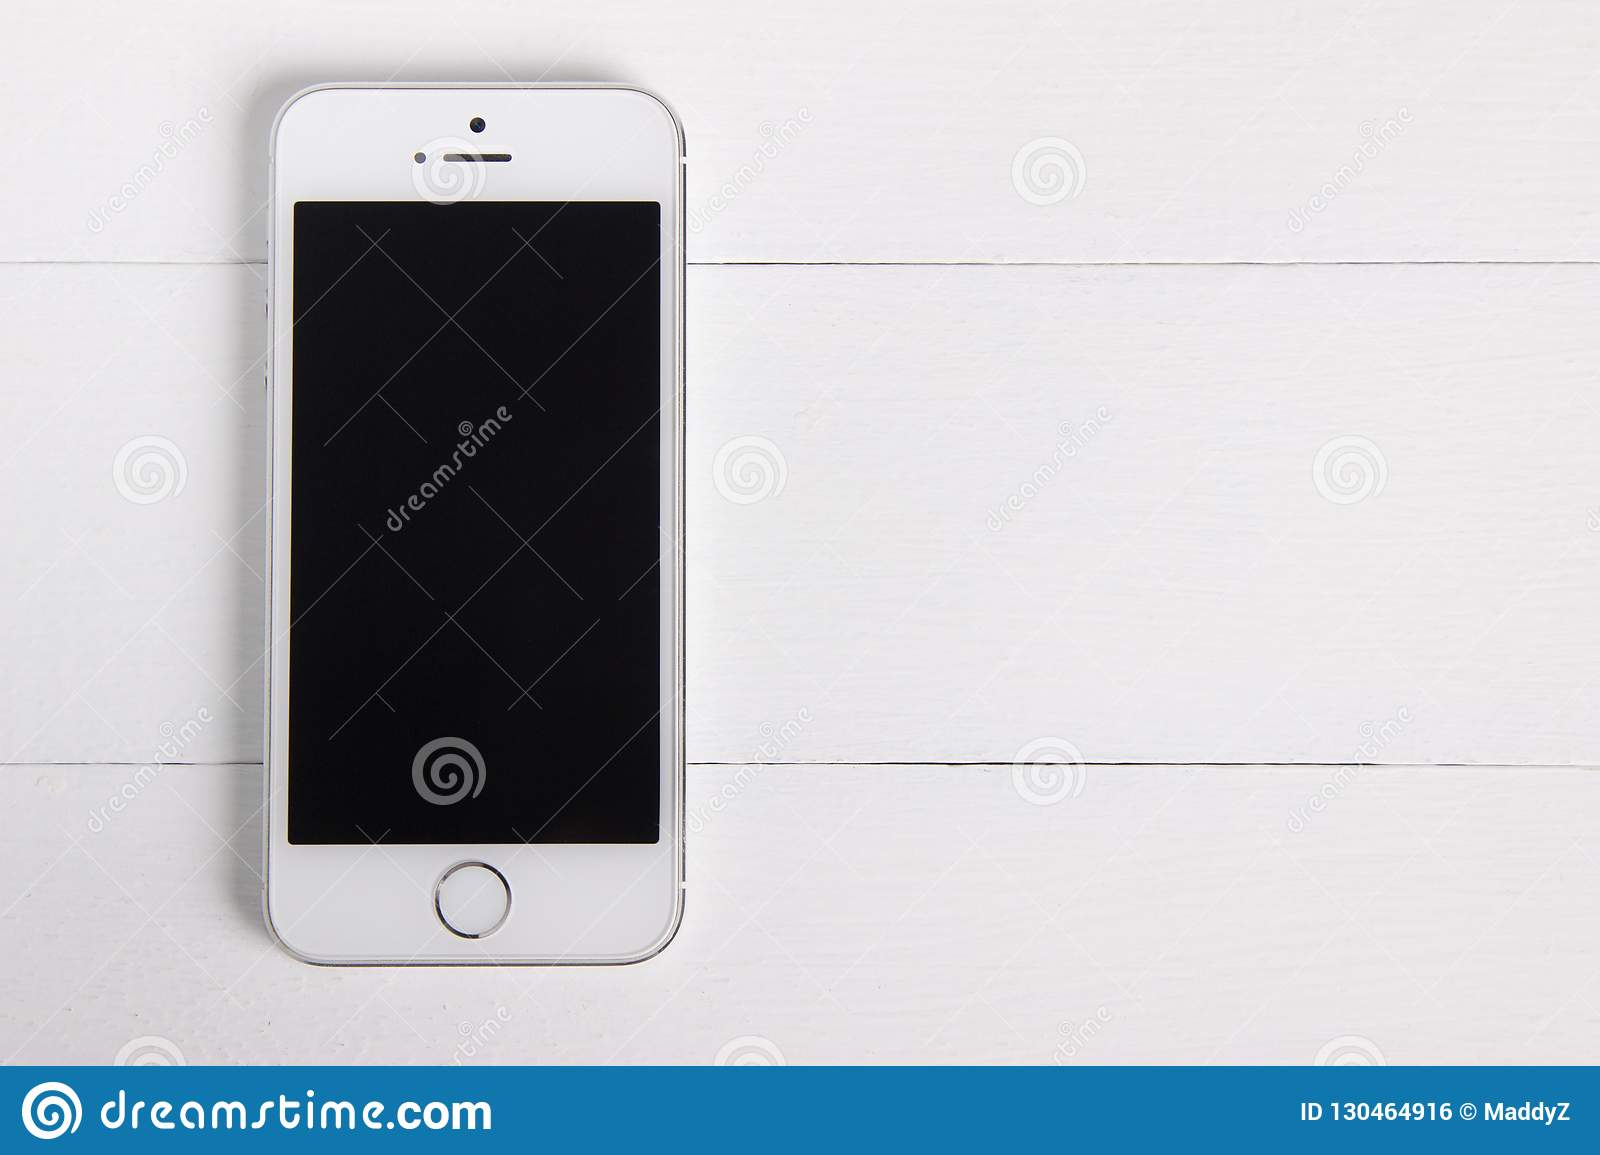 Moscow, Russia - November 1, 2018: Flat lay, front view of a silver white iPhone 5s. Product mock-up for ui, ux design